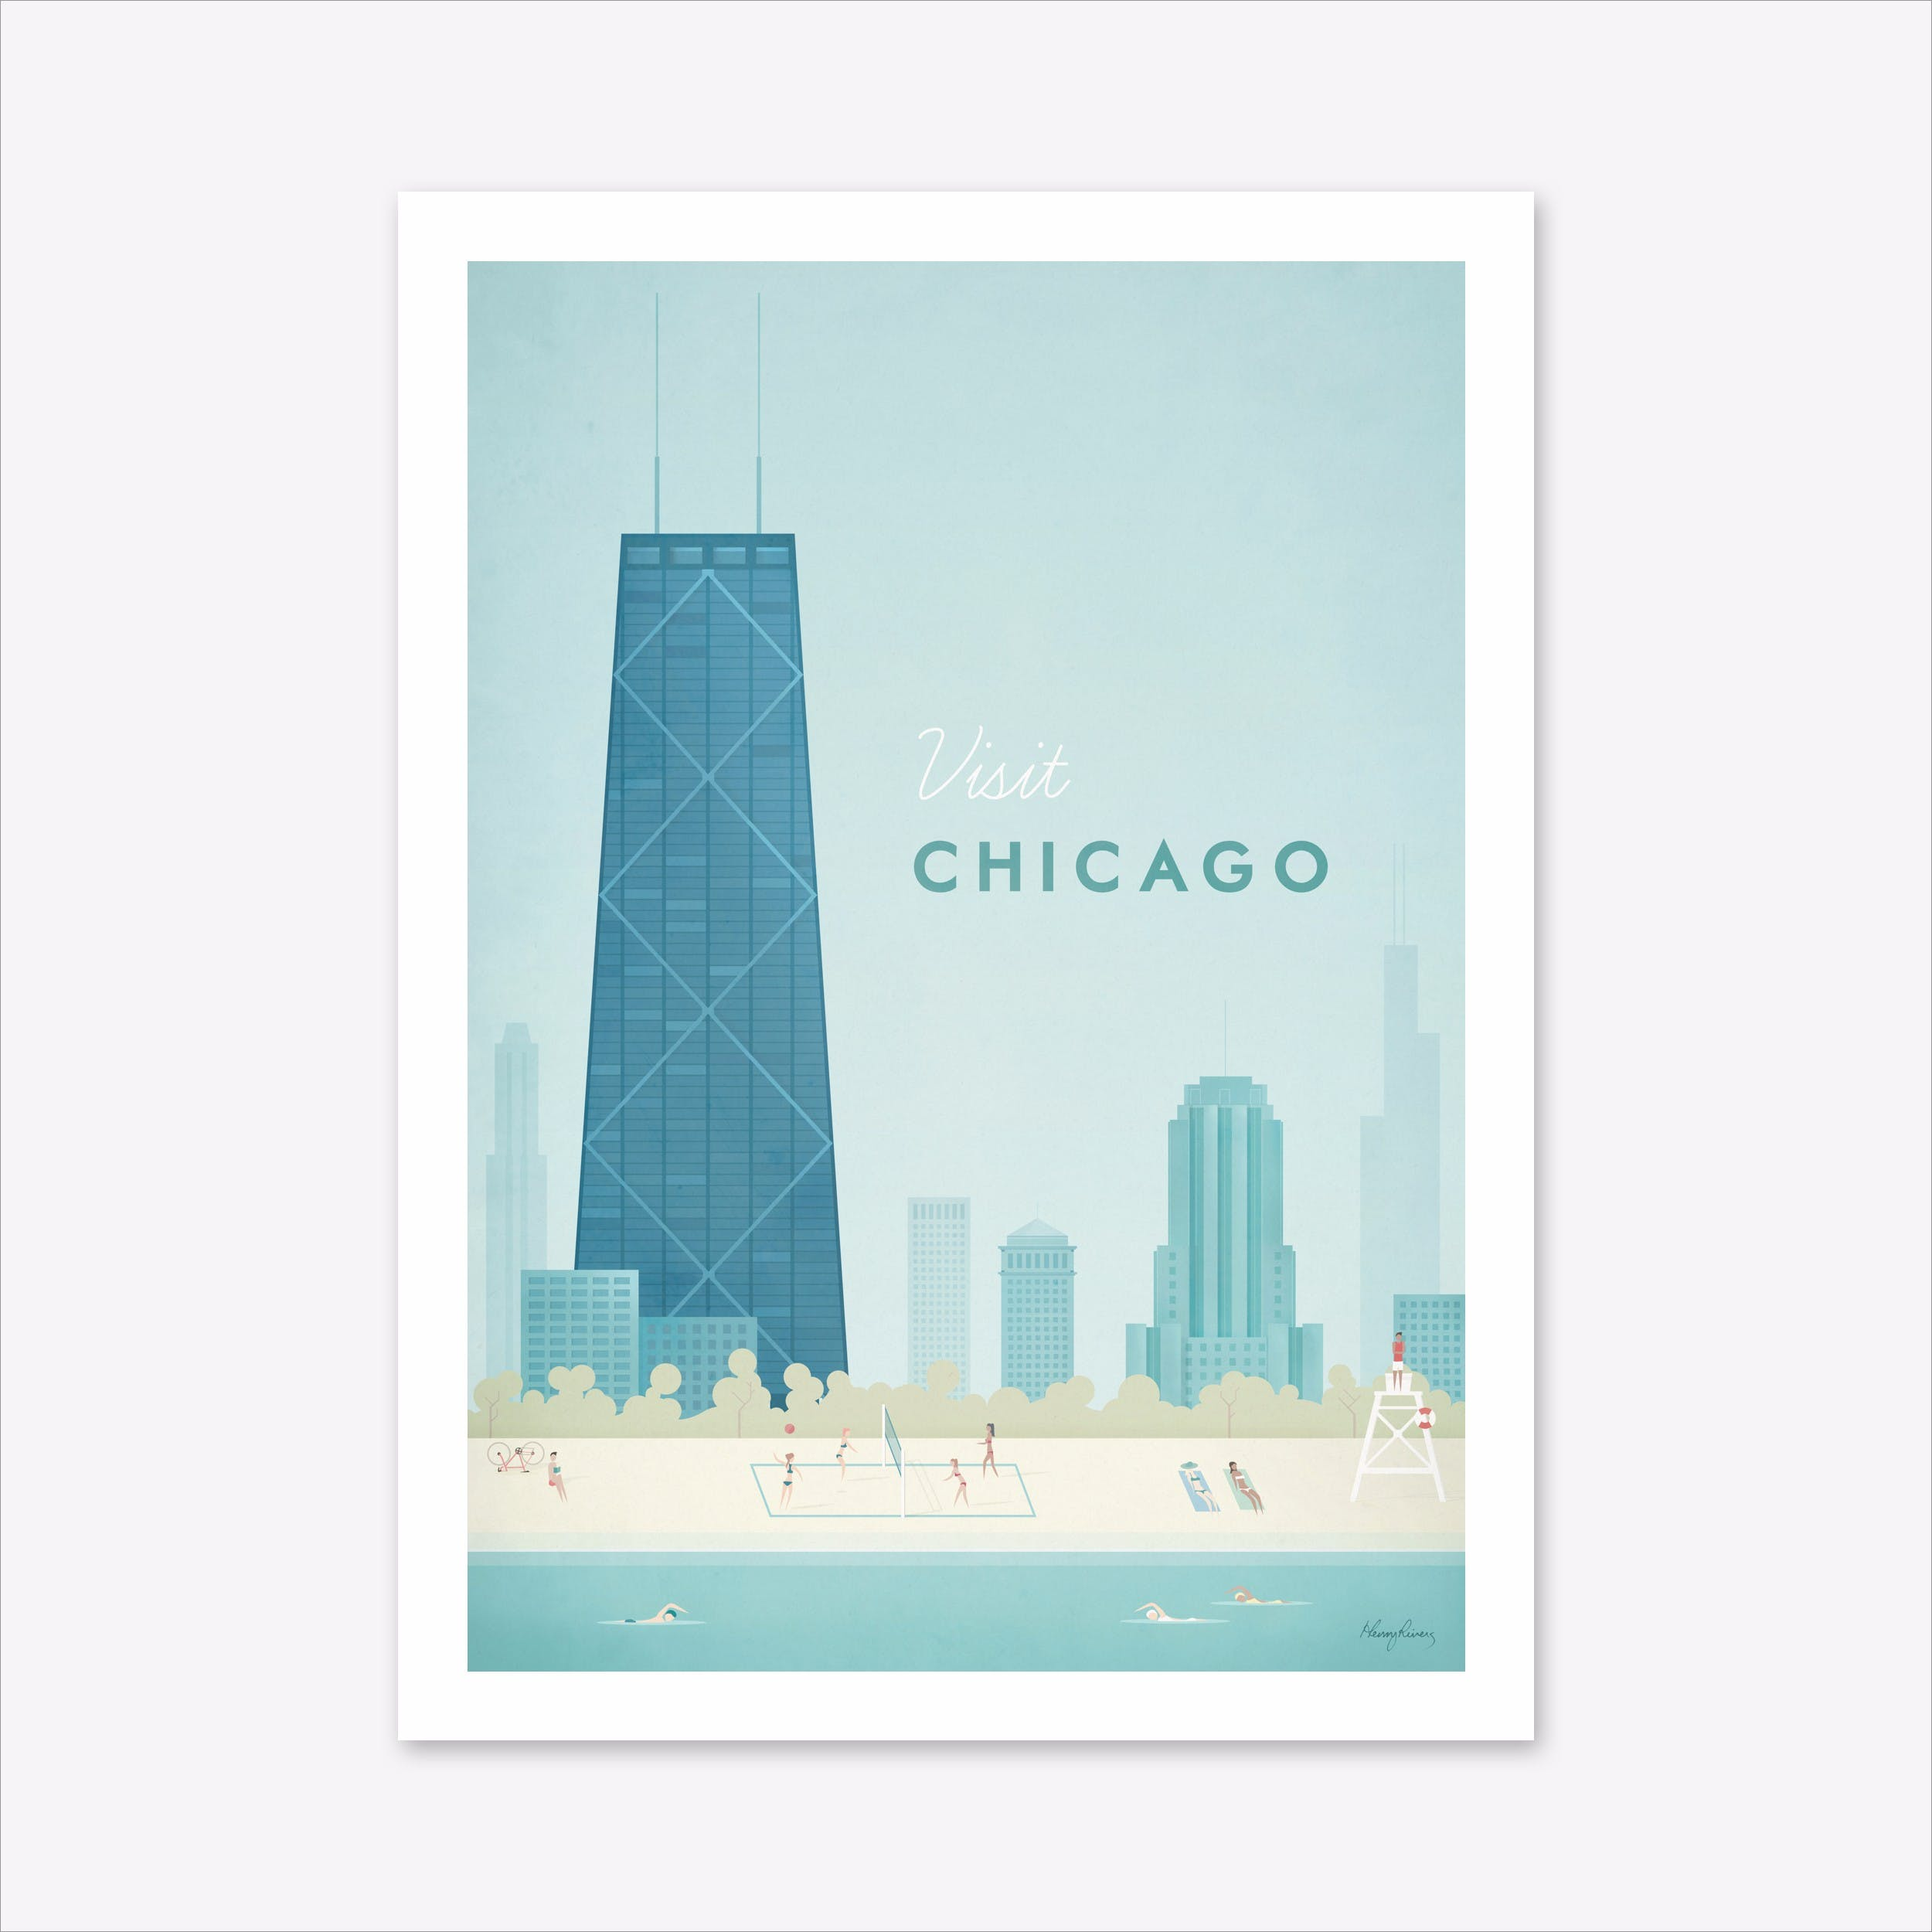 Visit Chicago Art Print